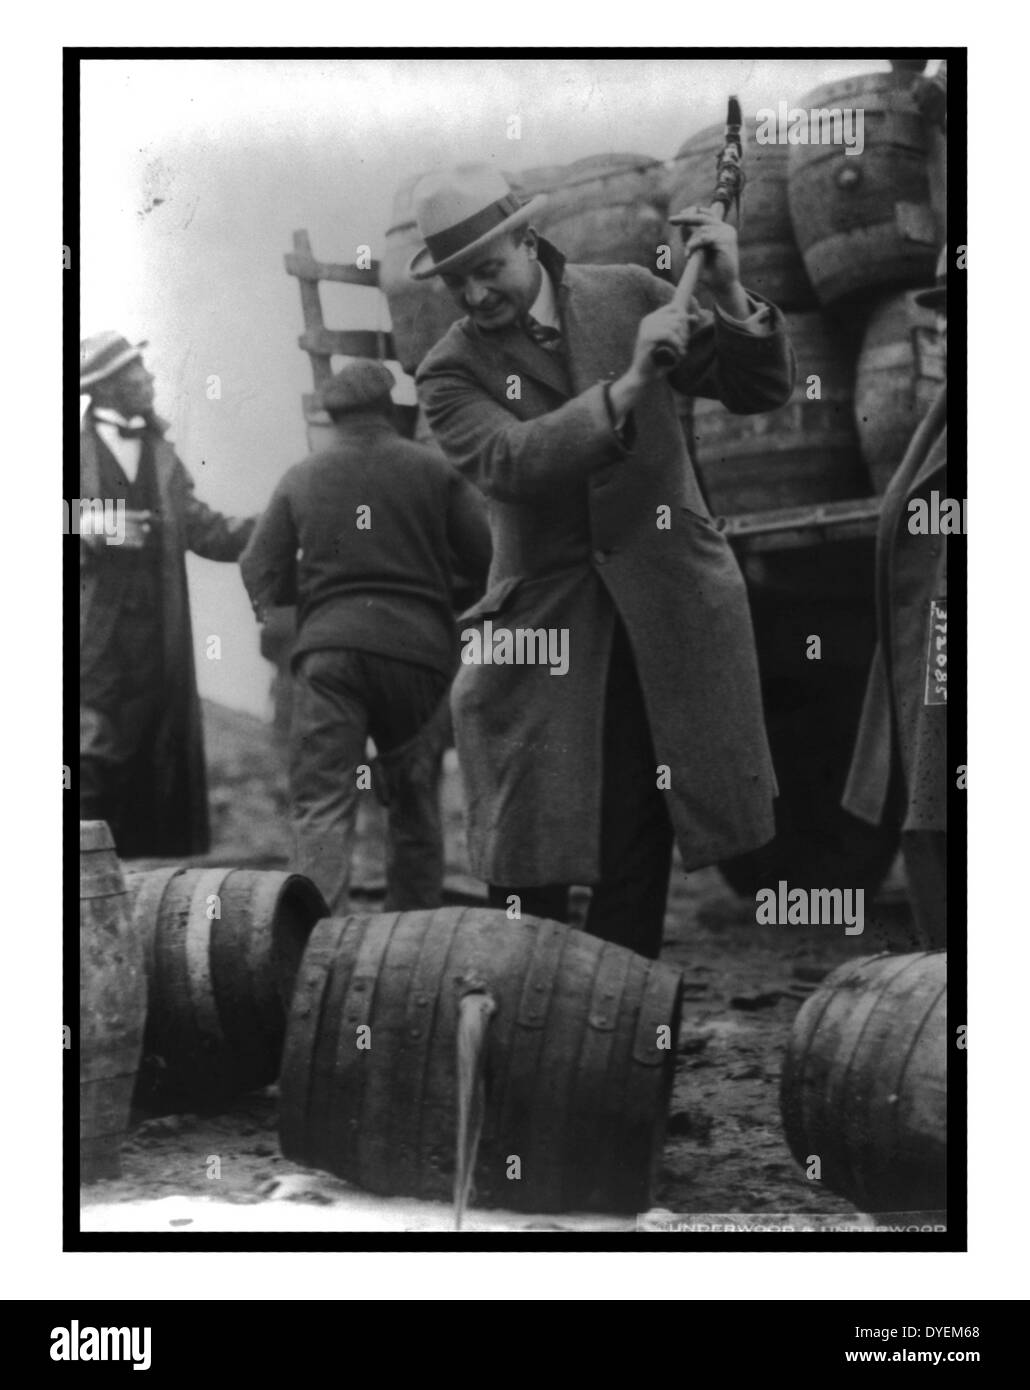 FBI Officer breaks a confiscated barrel of beer as part of the prohibition campaign against alcohol - Stock Image